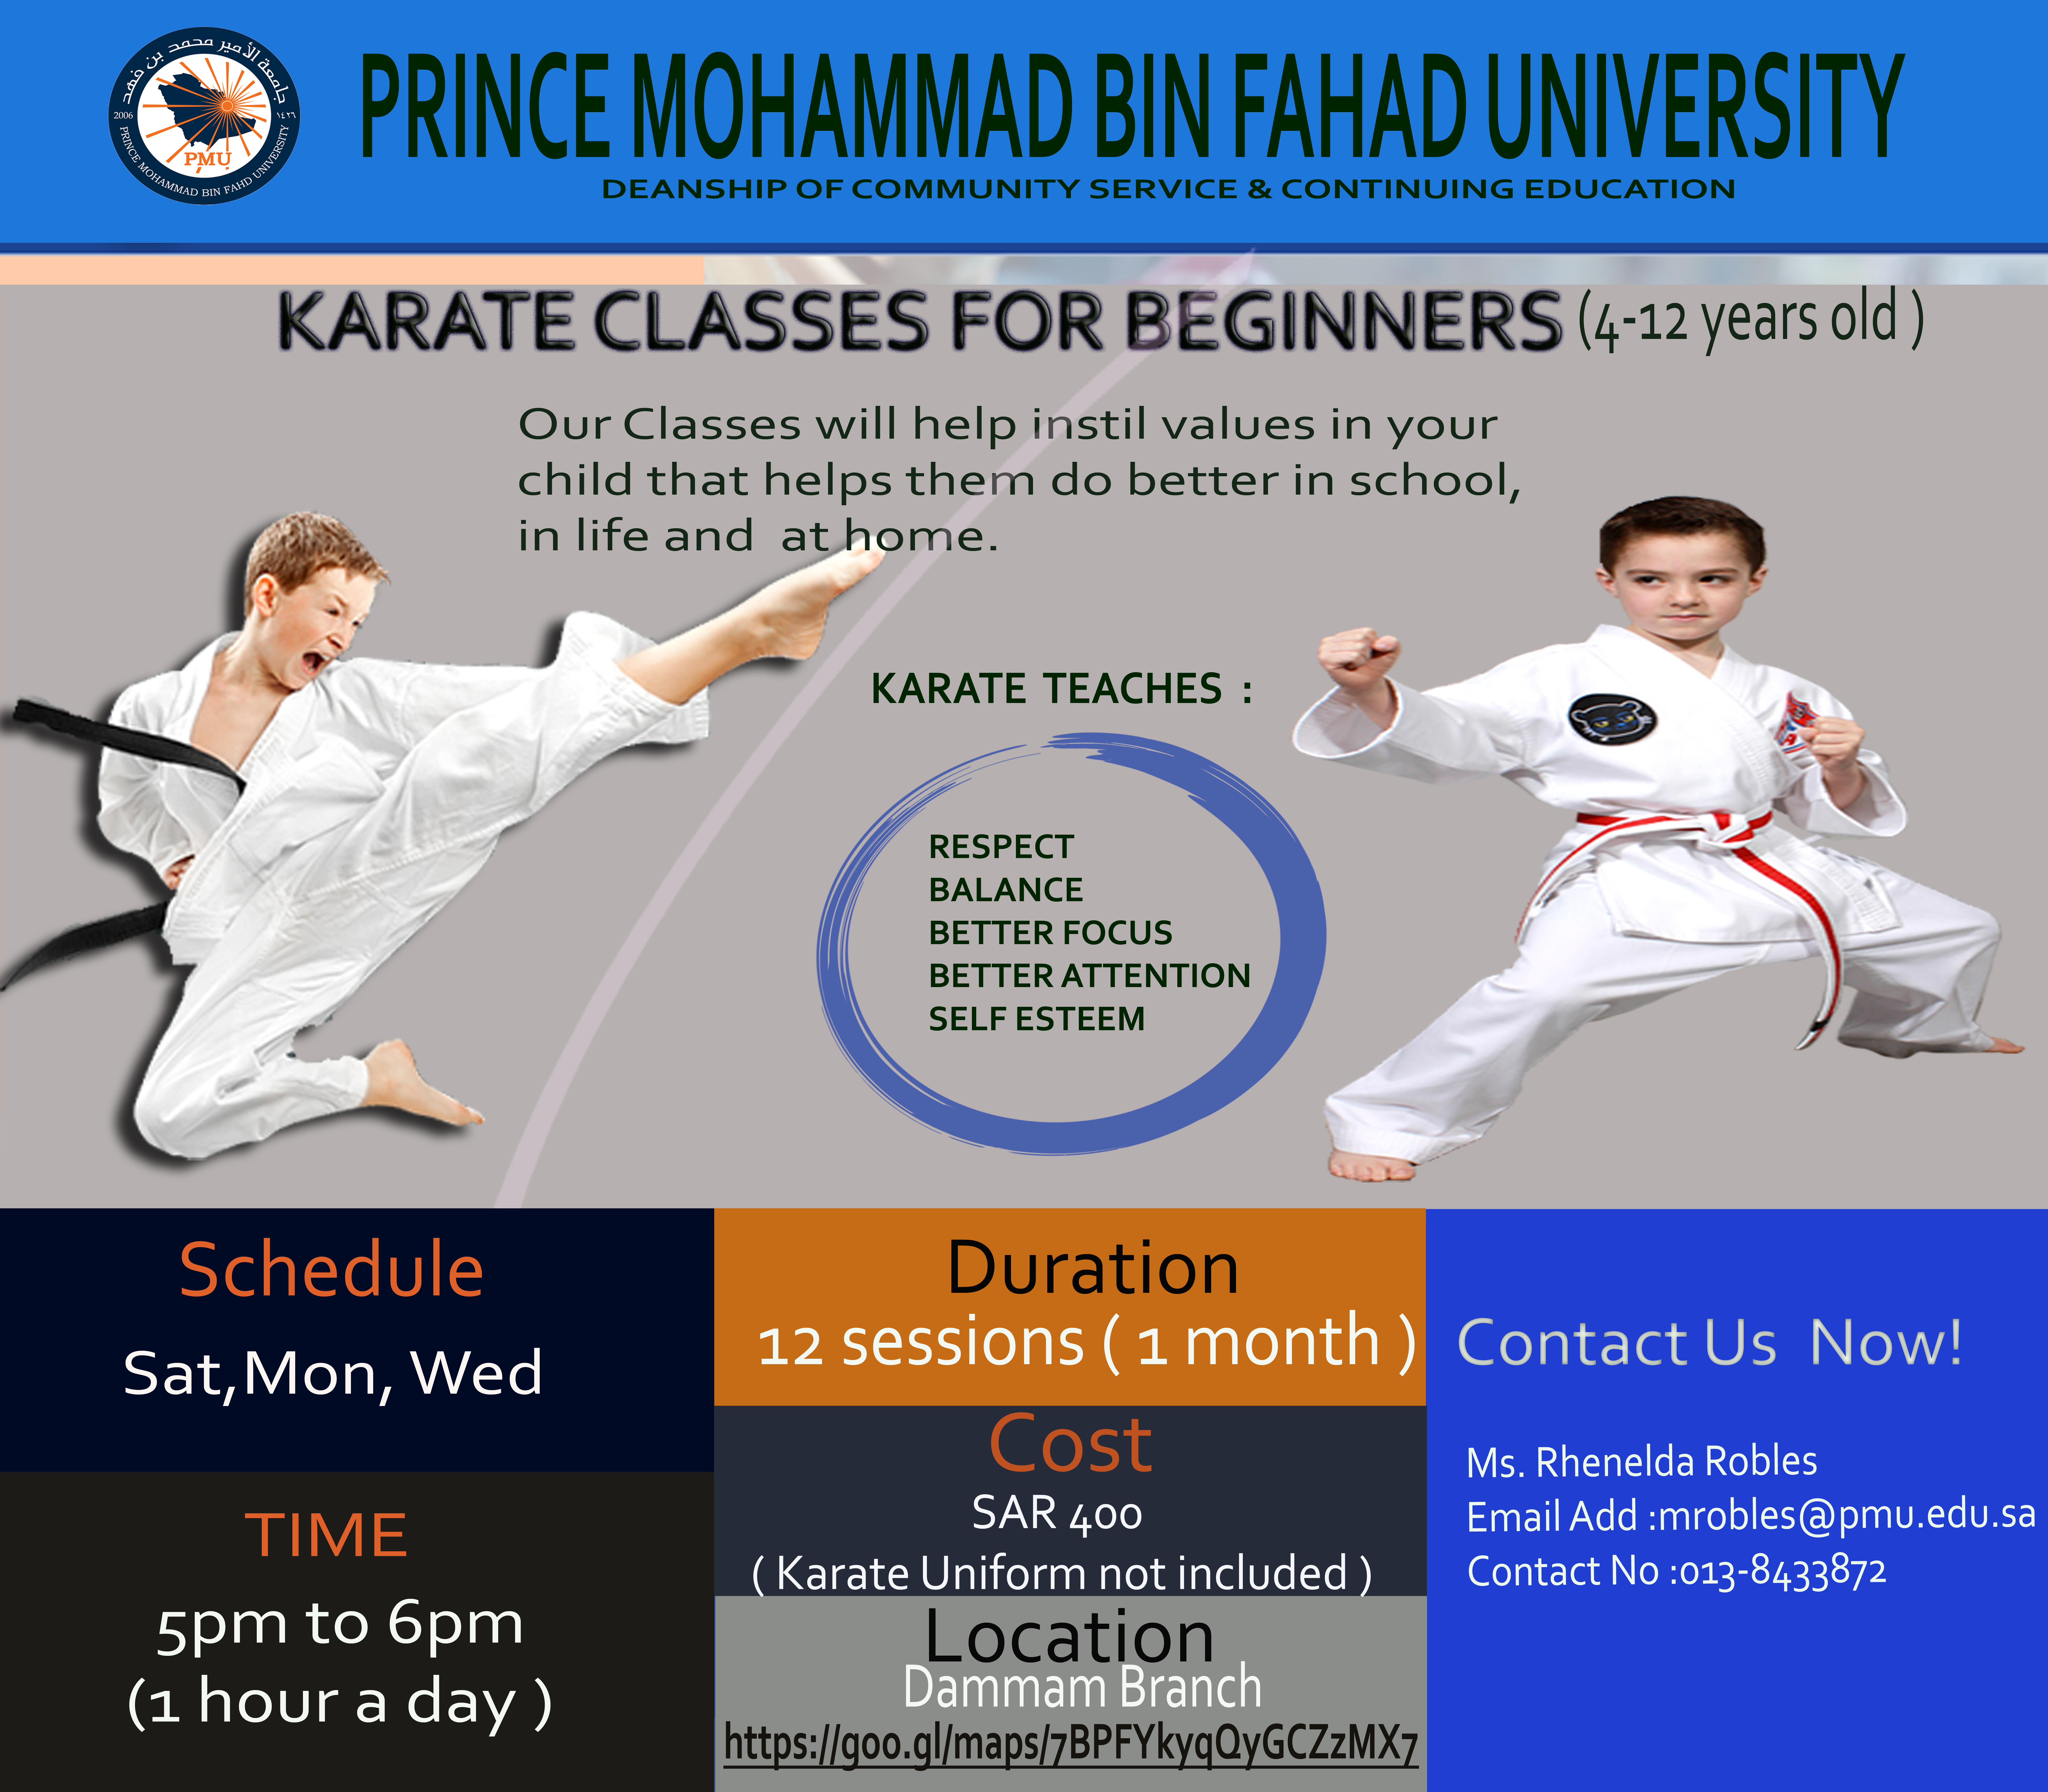 Karate Classes for Beginners (4-12 years old)